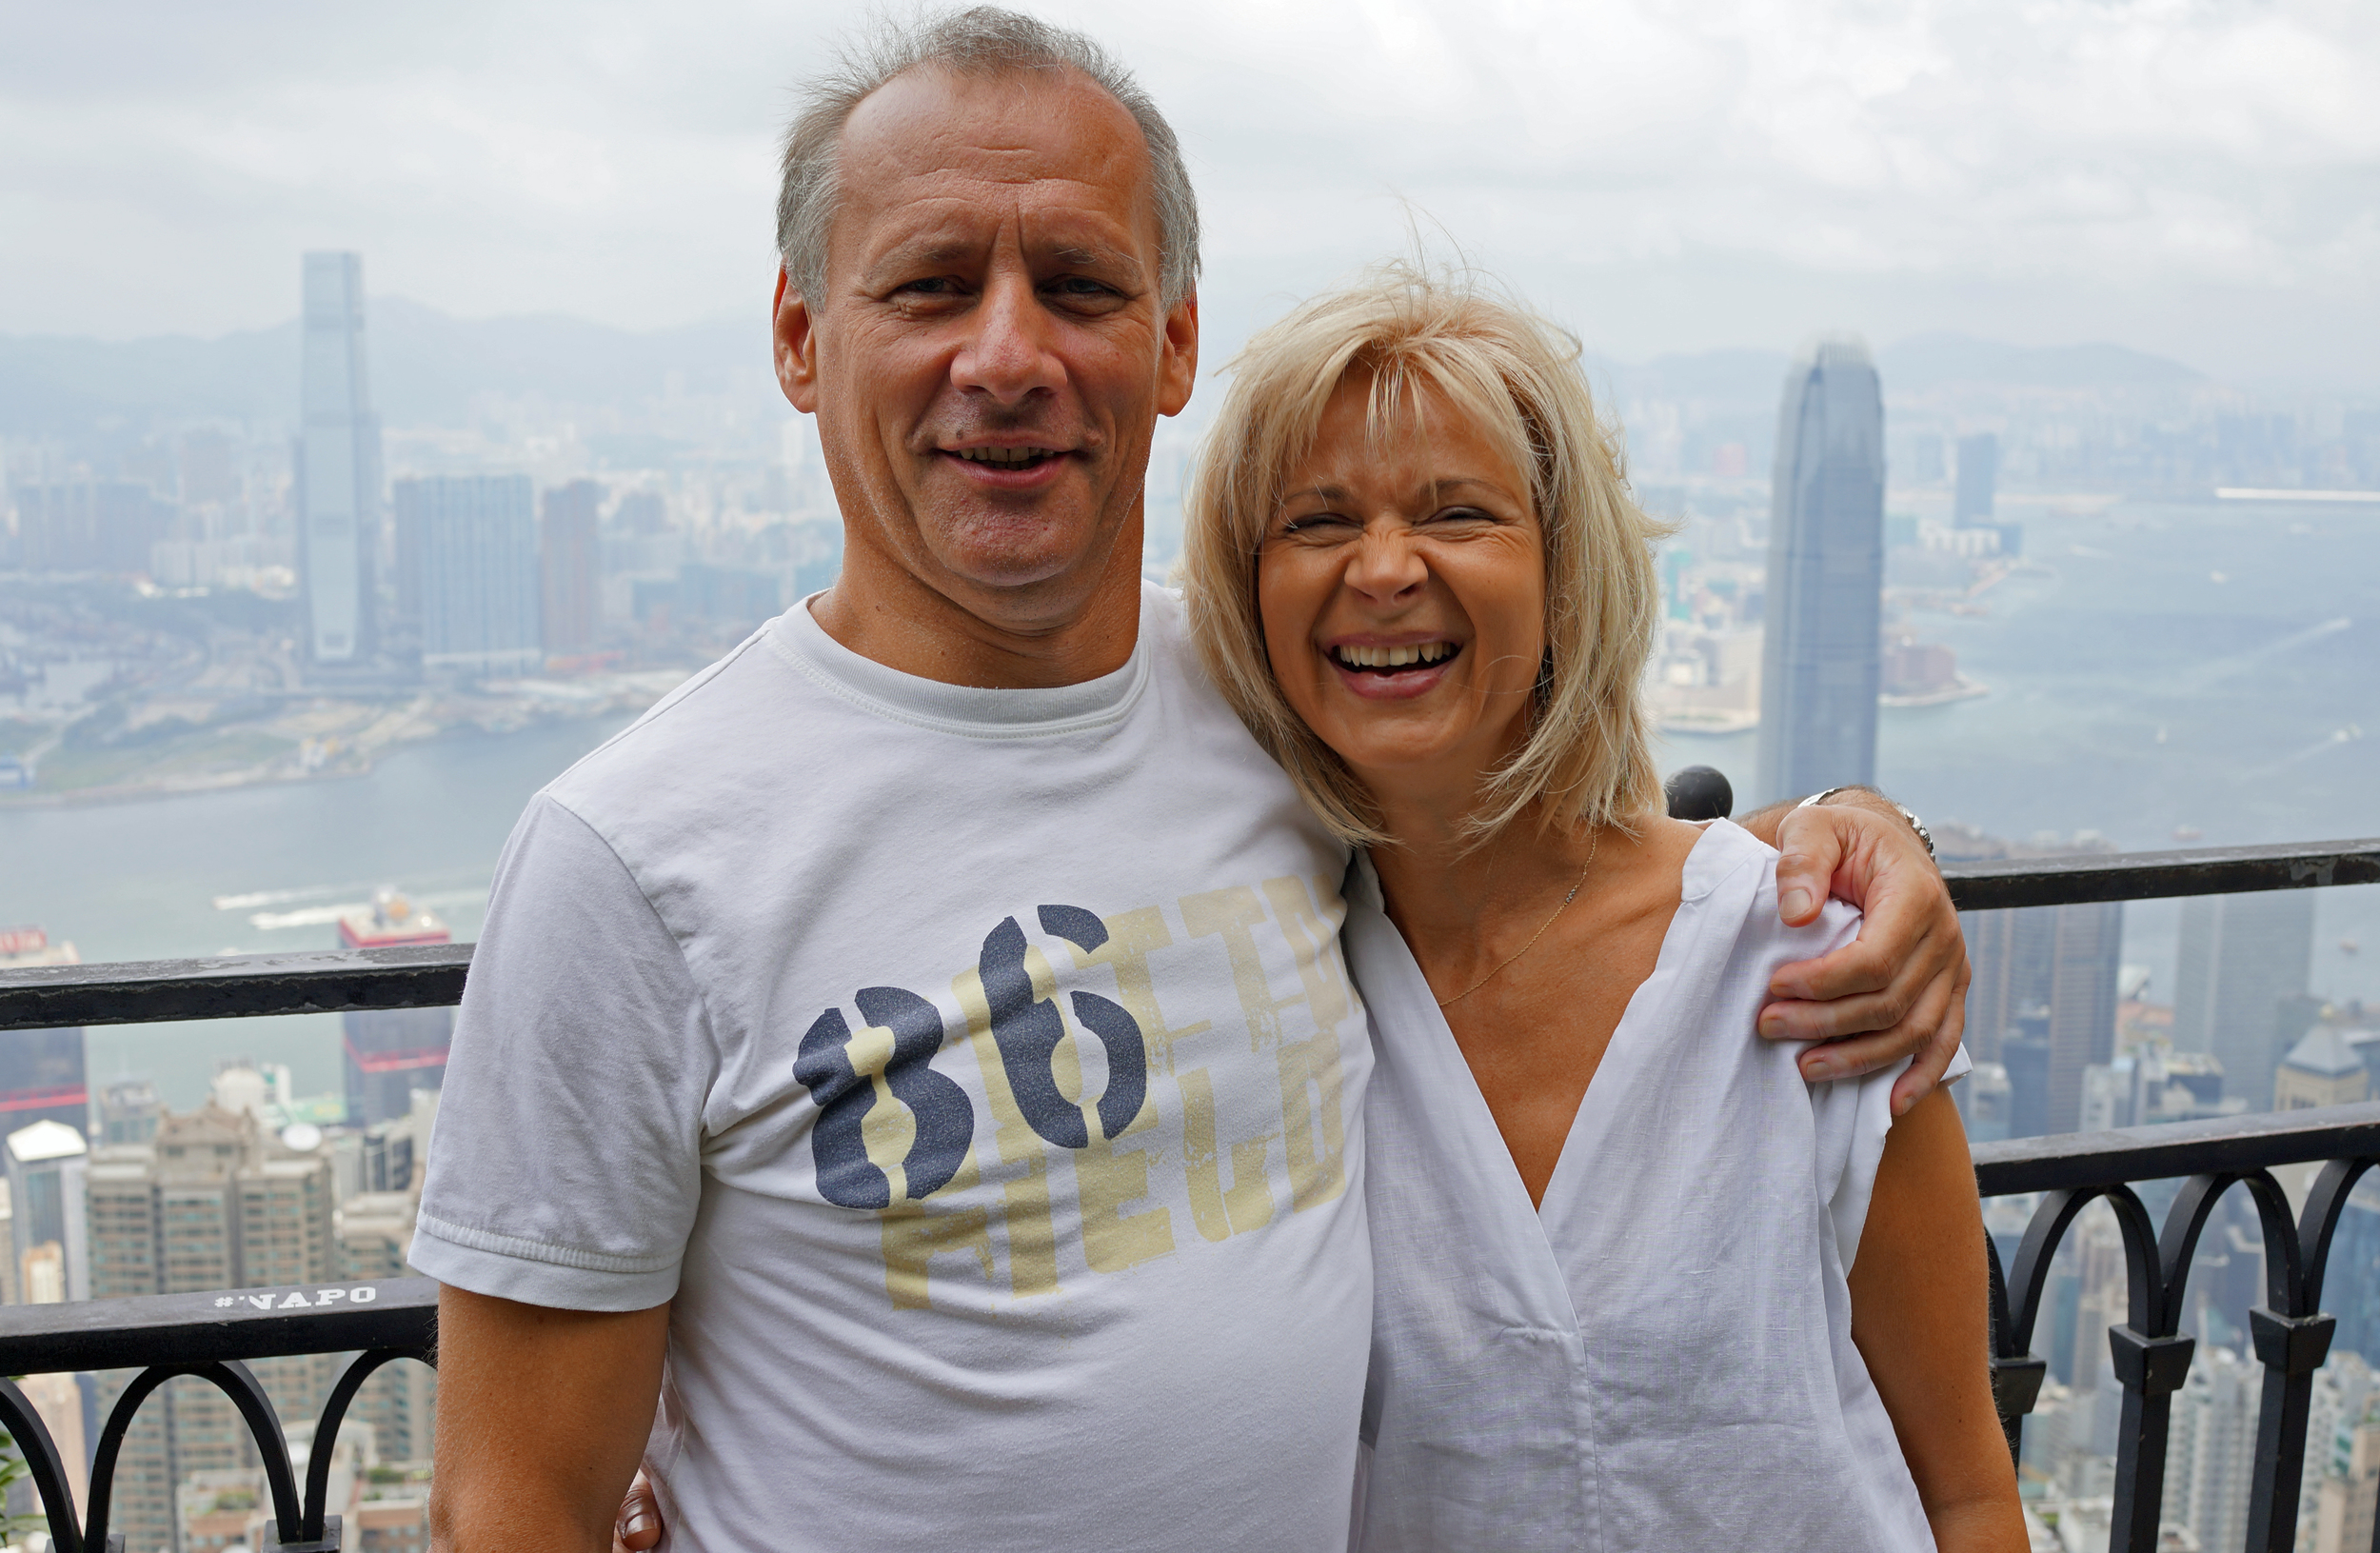 From Germany, Bernd is a Doctor and here with his lovely wife Anke seeing the great view from my spot at Victoria Peak before delivering a lecture or three at one of our Hospitals.